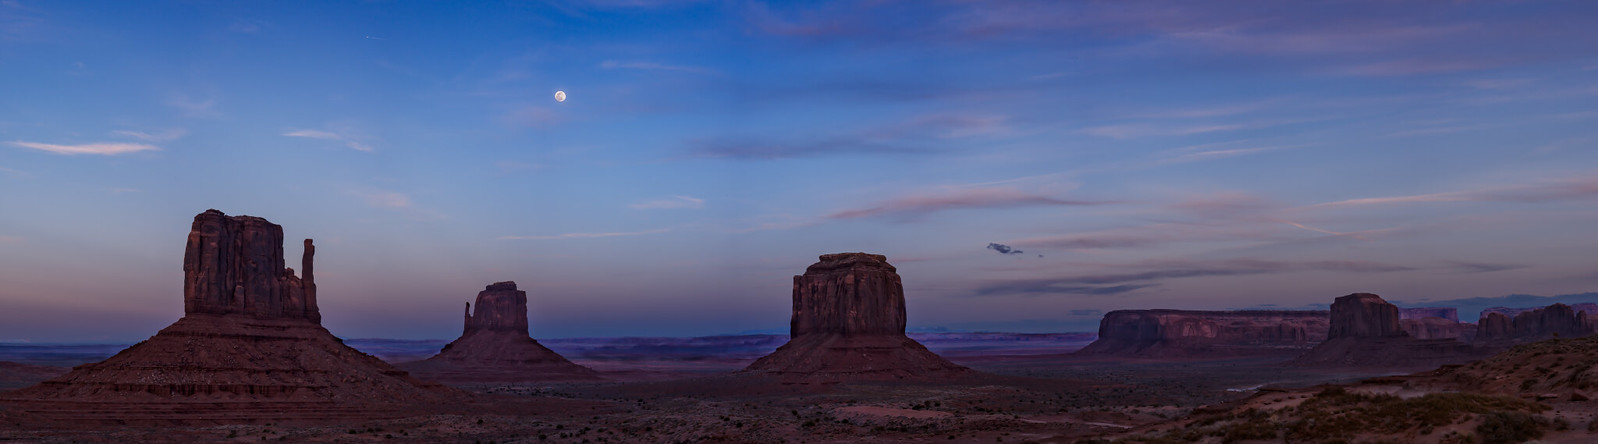 Moon, Merrick, Mittens, Mesas, Monuments, and a Little Magic